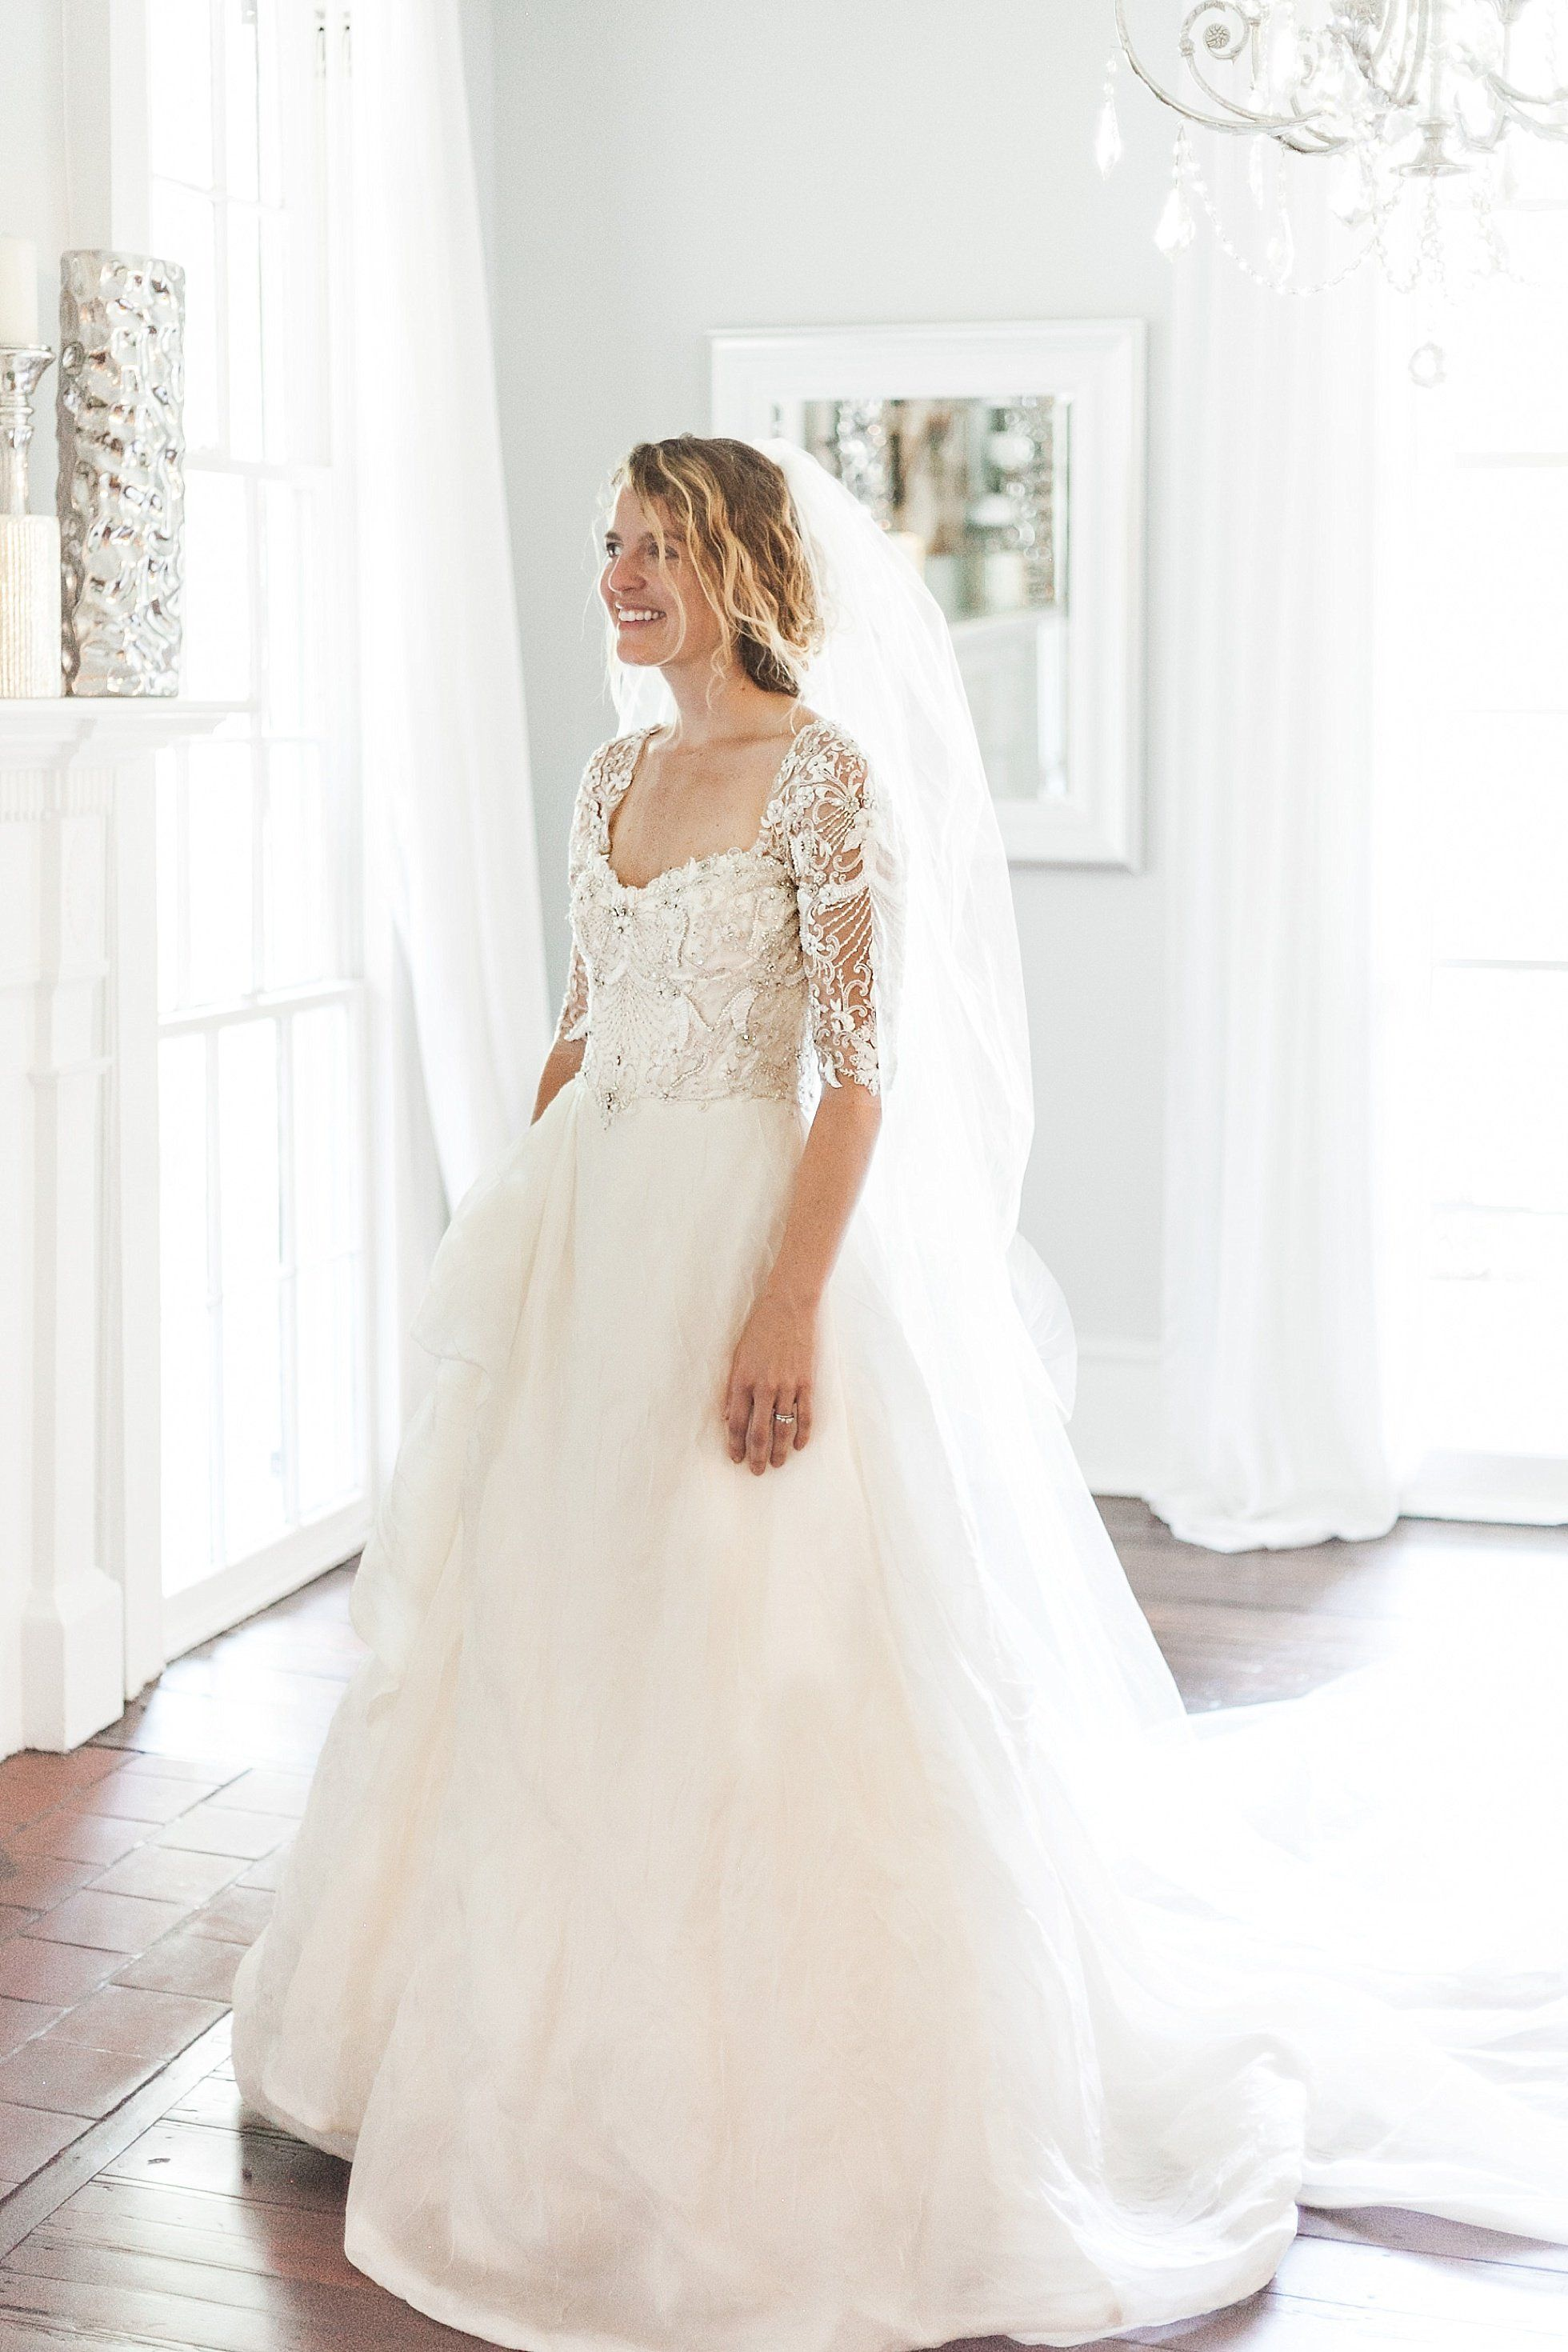 Monique Lhuillier Royalty Wedding Gown For Rent Want To Try It